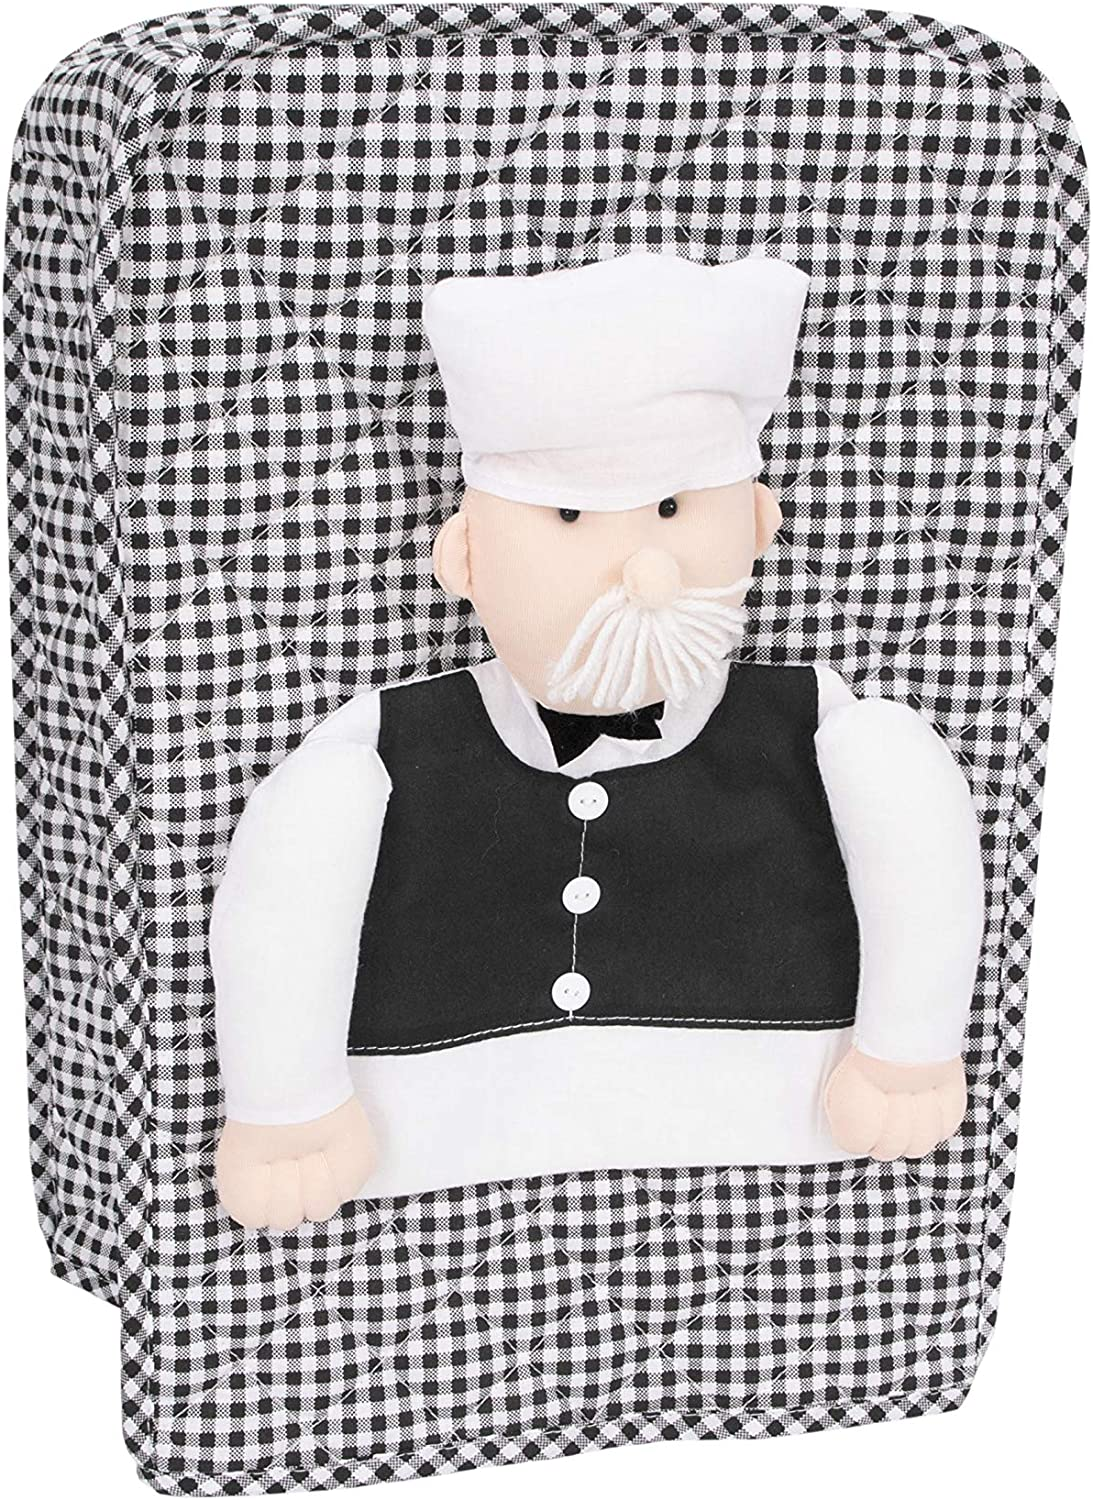 Ritz 19480 Coffee Cover, 1-Pack, Chef